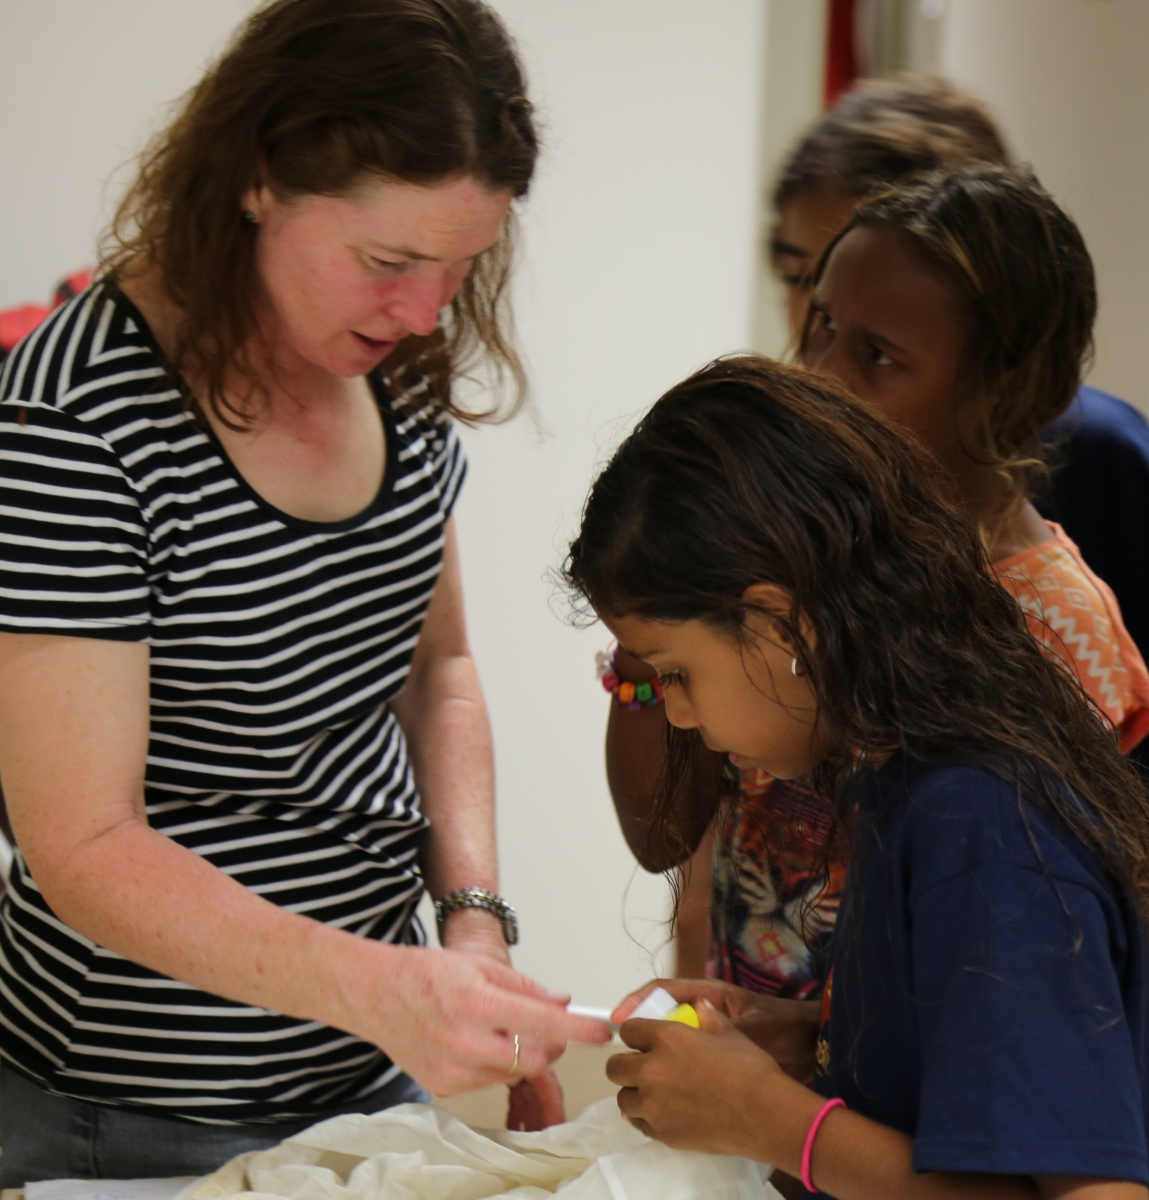 Laura children select vials before collecting invertebrates at Quinkan community day (image credit S. Nally)